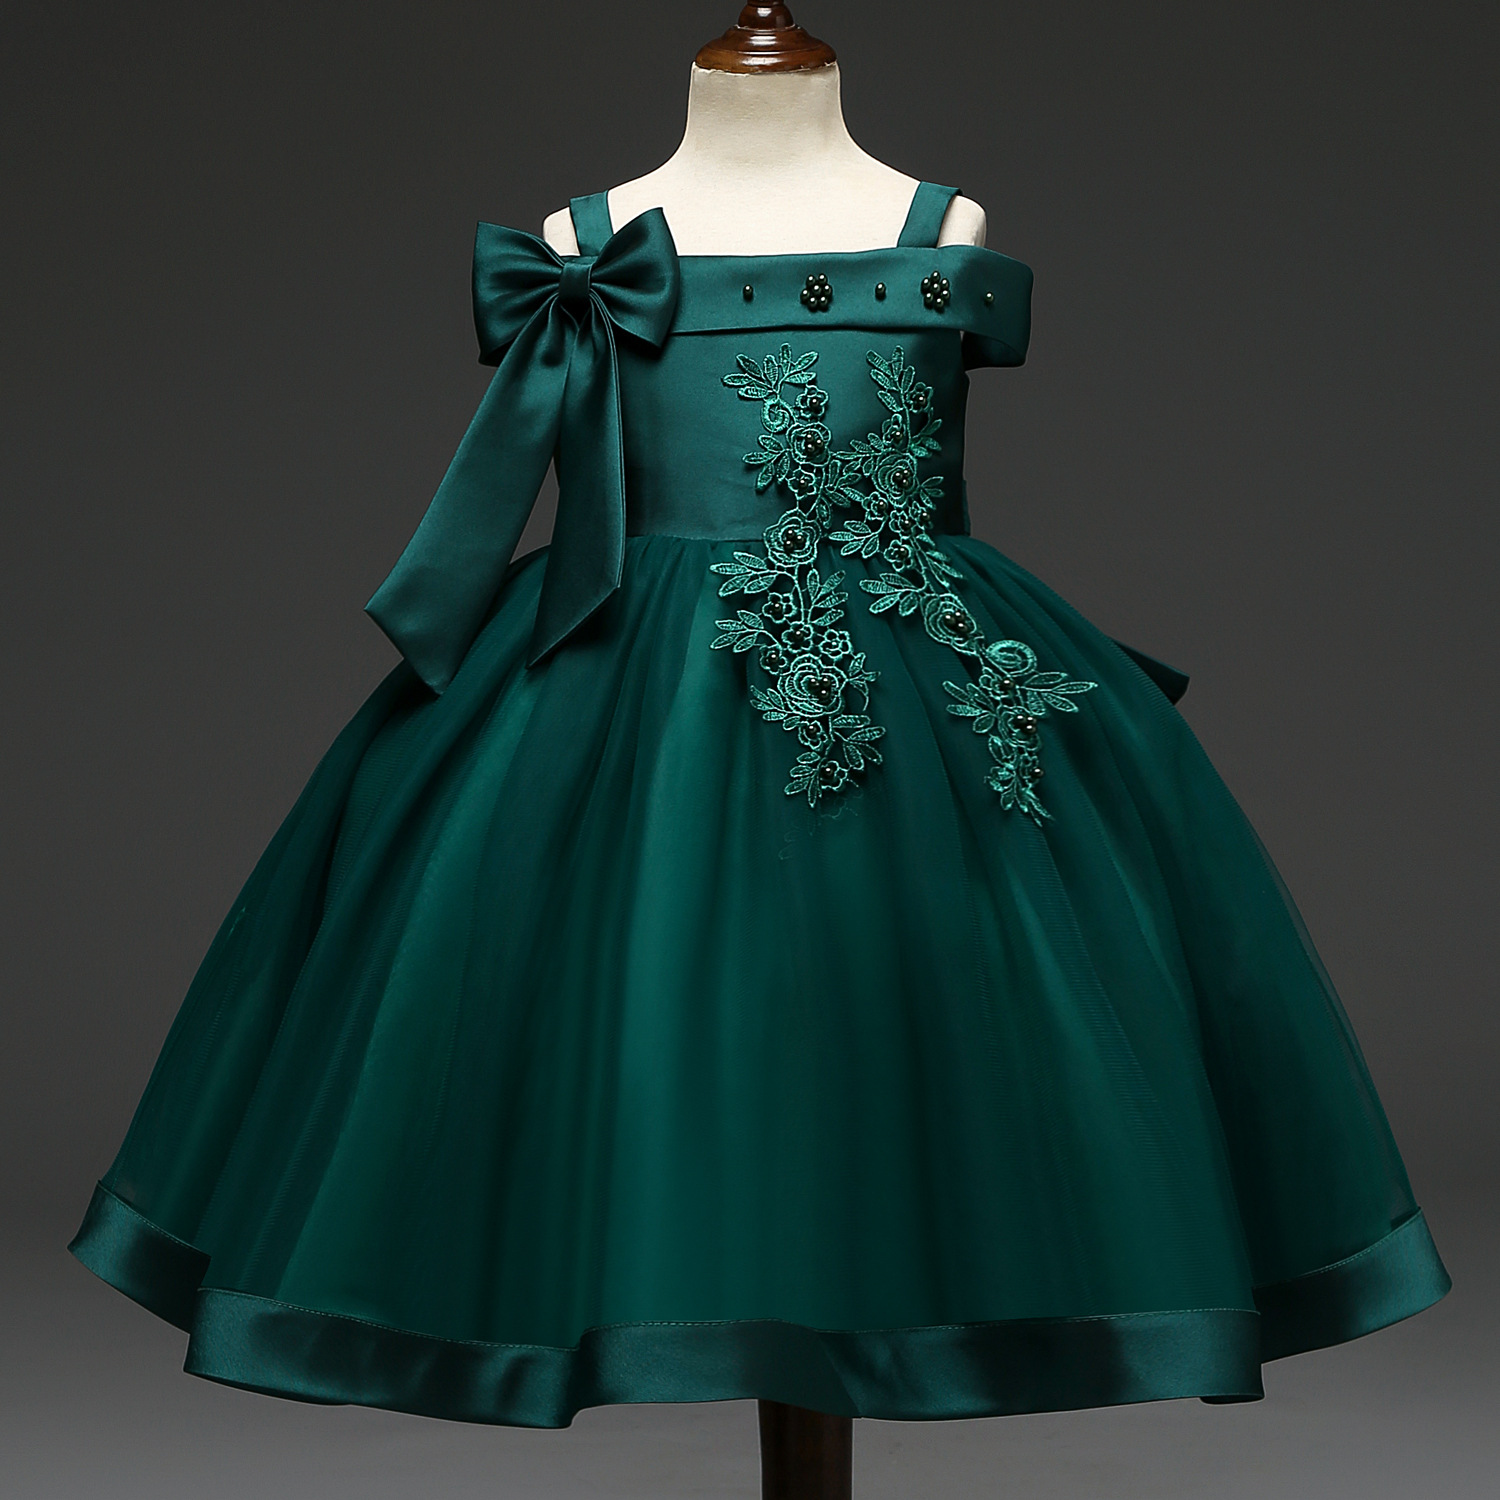 Europe And America CHILDREN'S Dress Princess Dress Children Dress Girls Host Catwalks Performance Wear Skirt